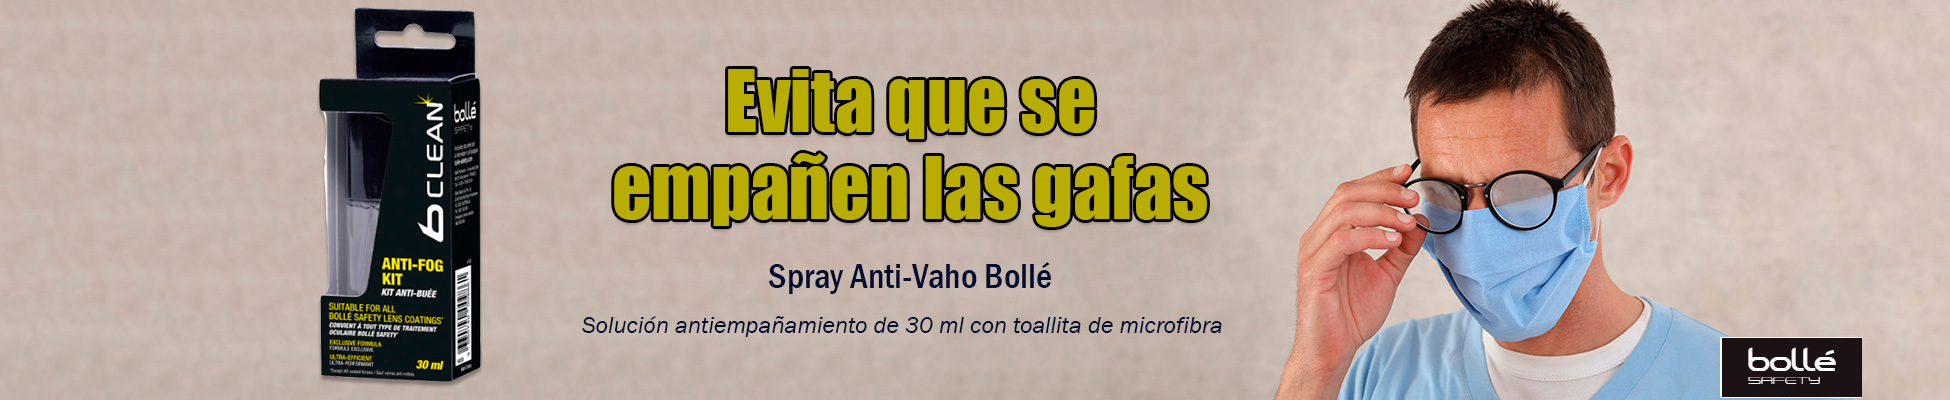 Spray Anti Vaho Bolle